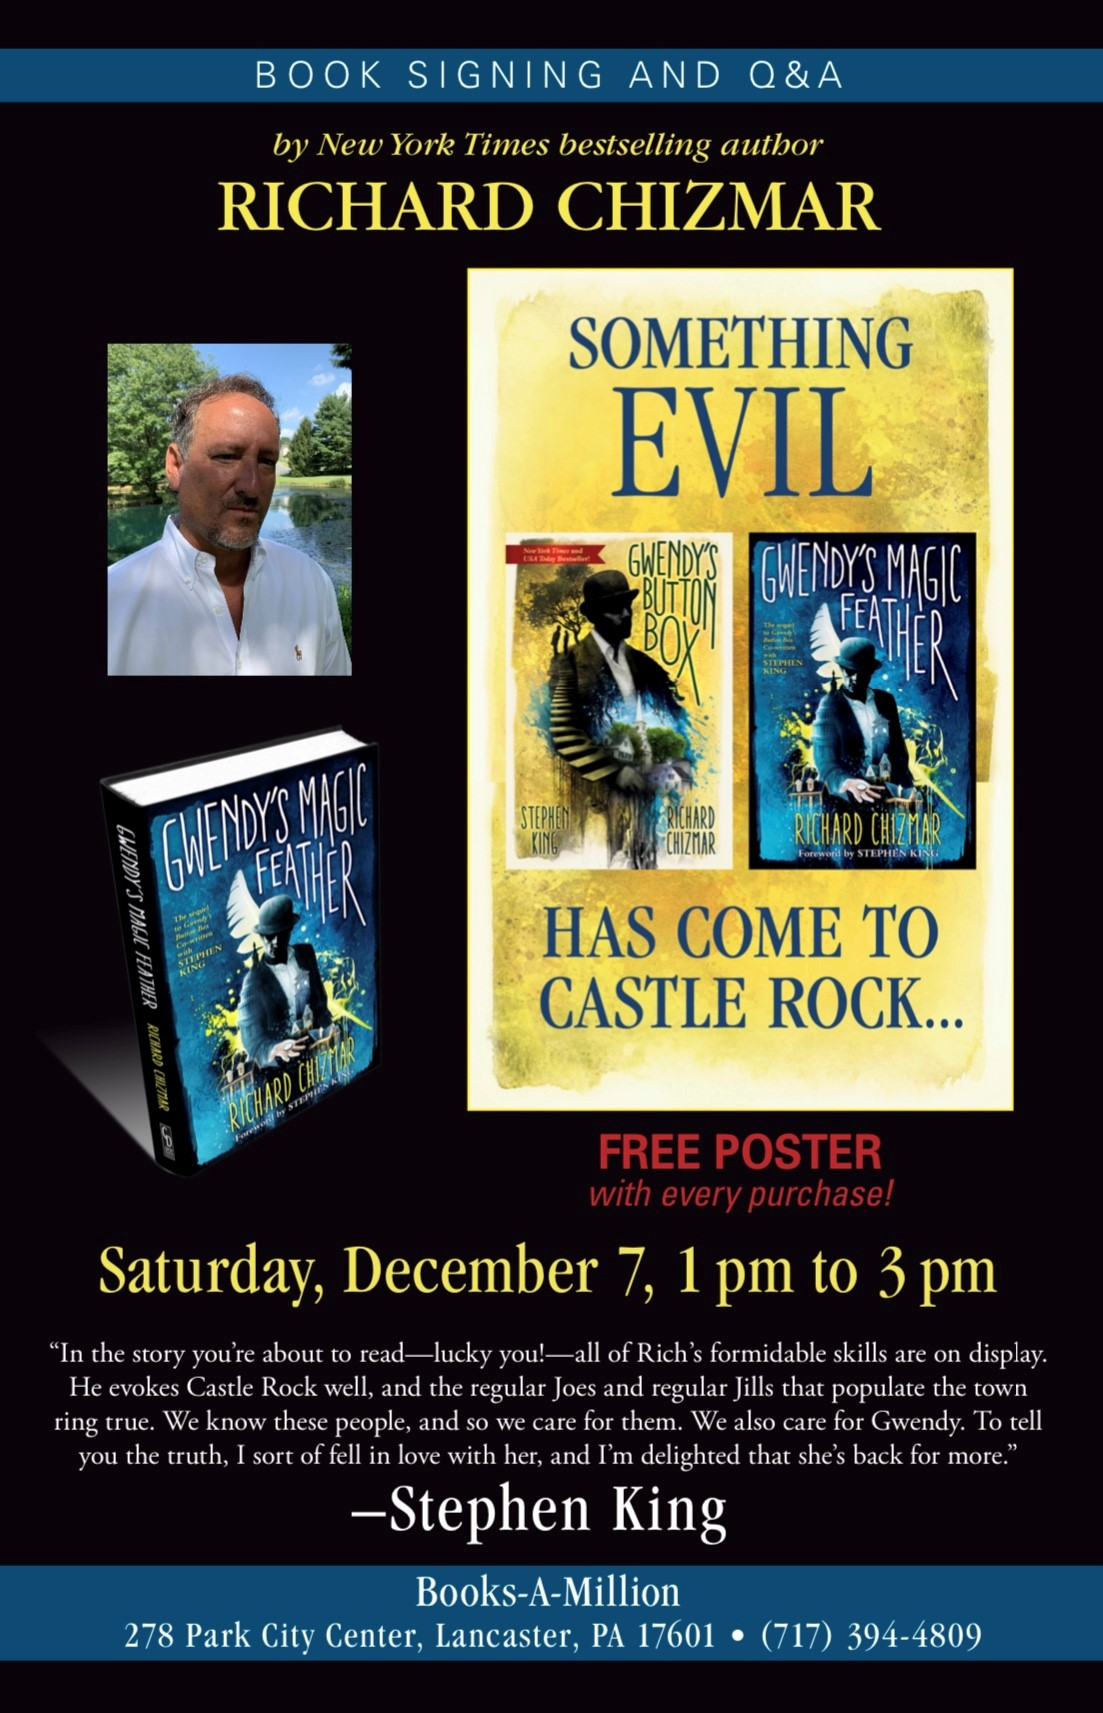 Richard Chizmar is coming to BAM!!